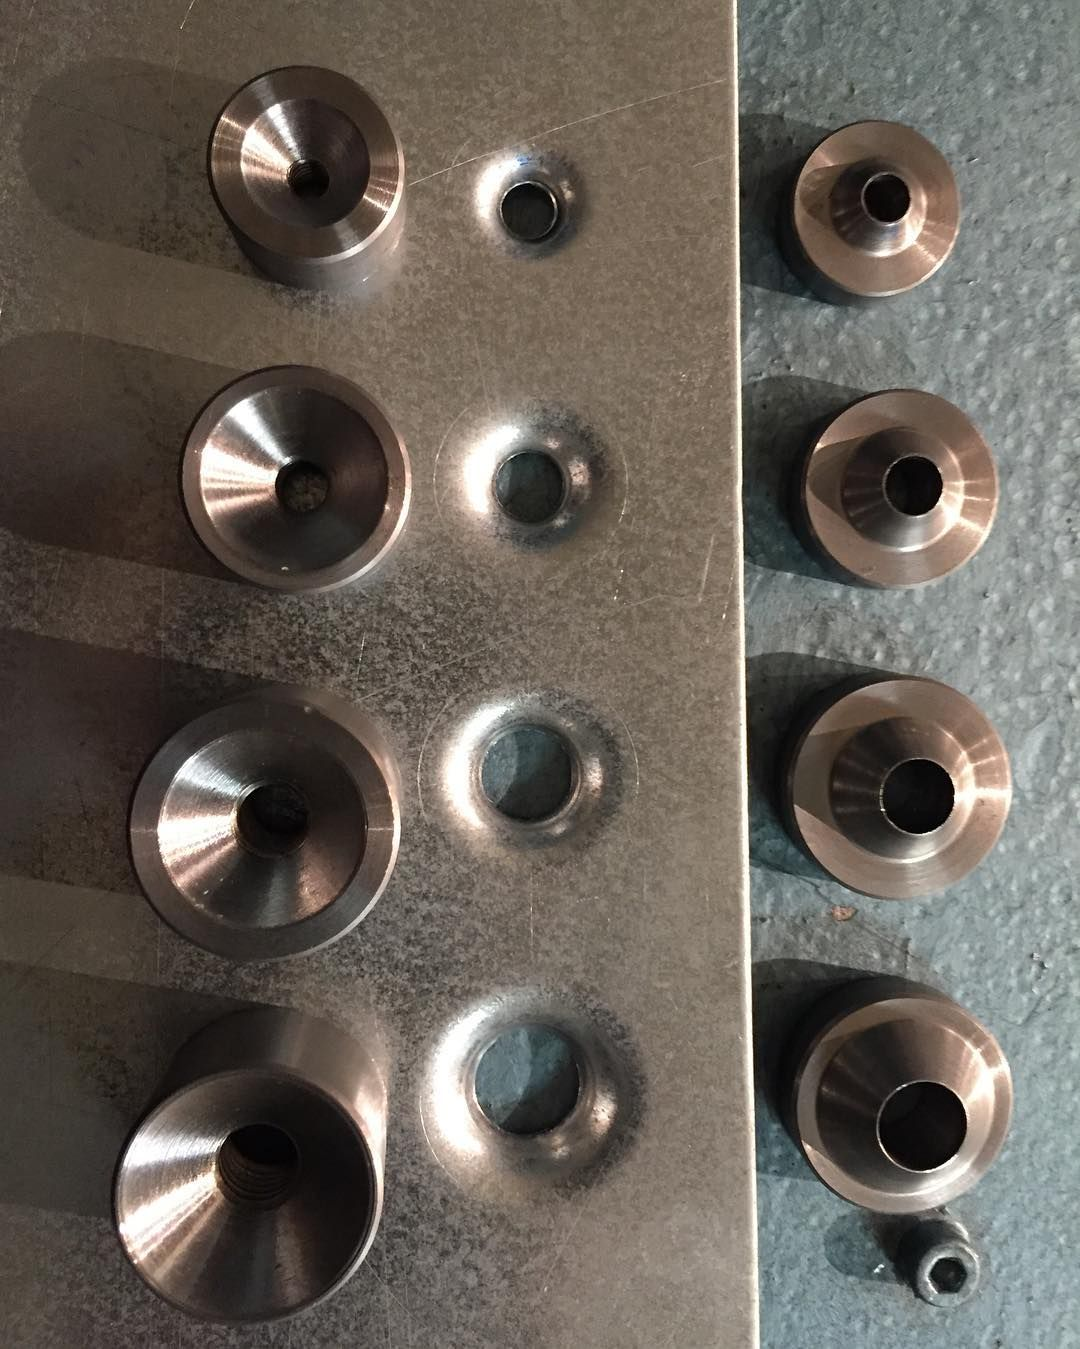 We Ve Got More Flush Recess Dimple Dies In Stock They Come As A Set Of Four Sizes 10 1 4 5 16 3 Sheet Metal Fabrication Metal Fabrication Metal Forming